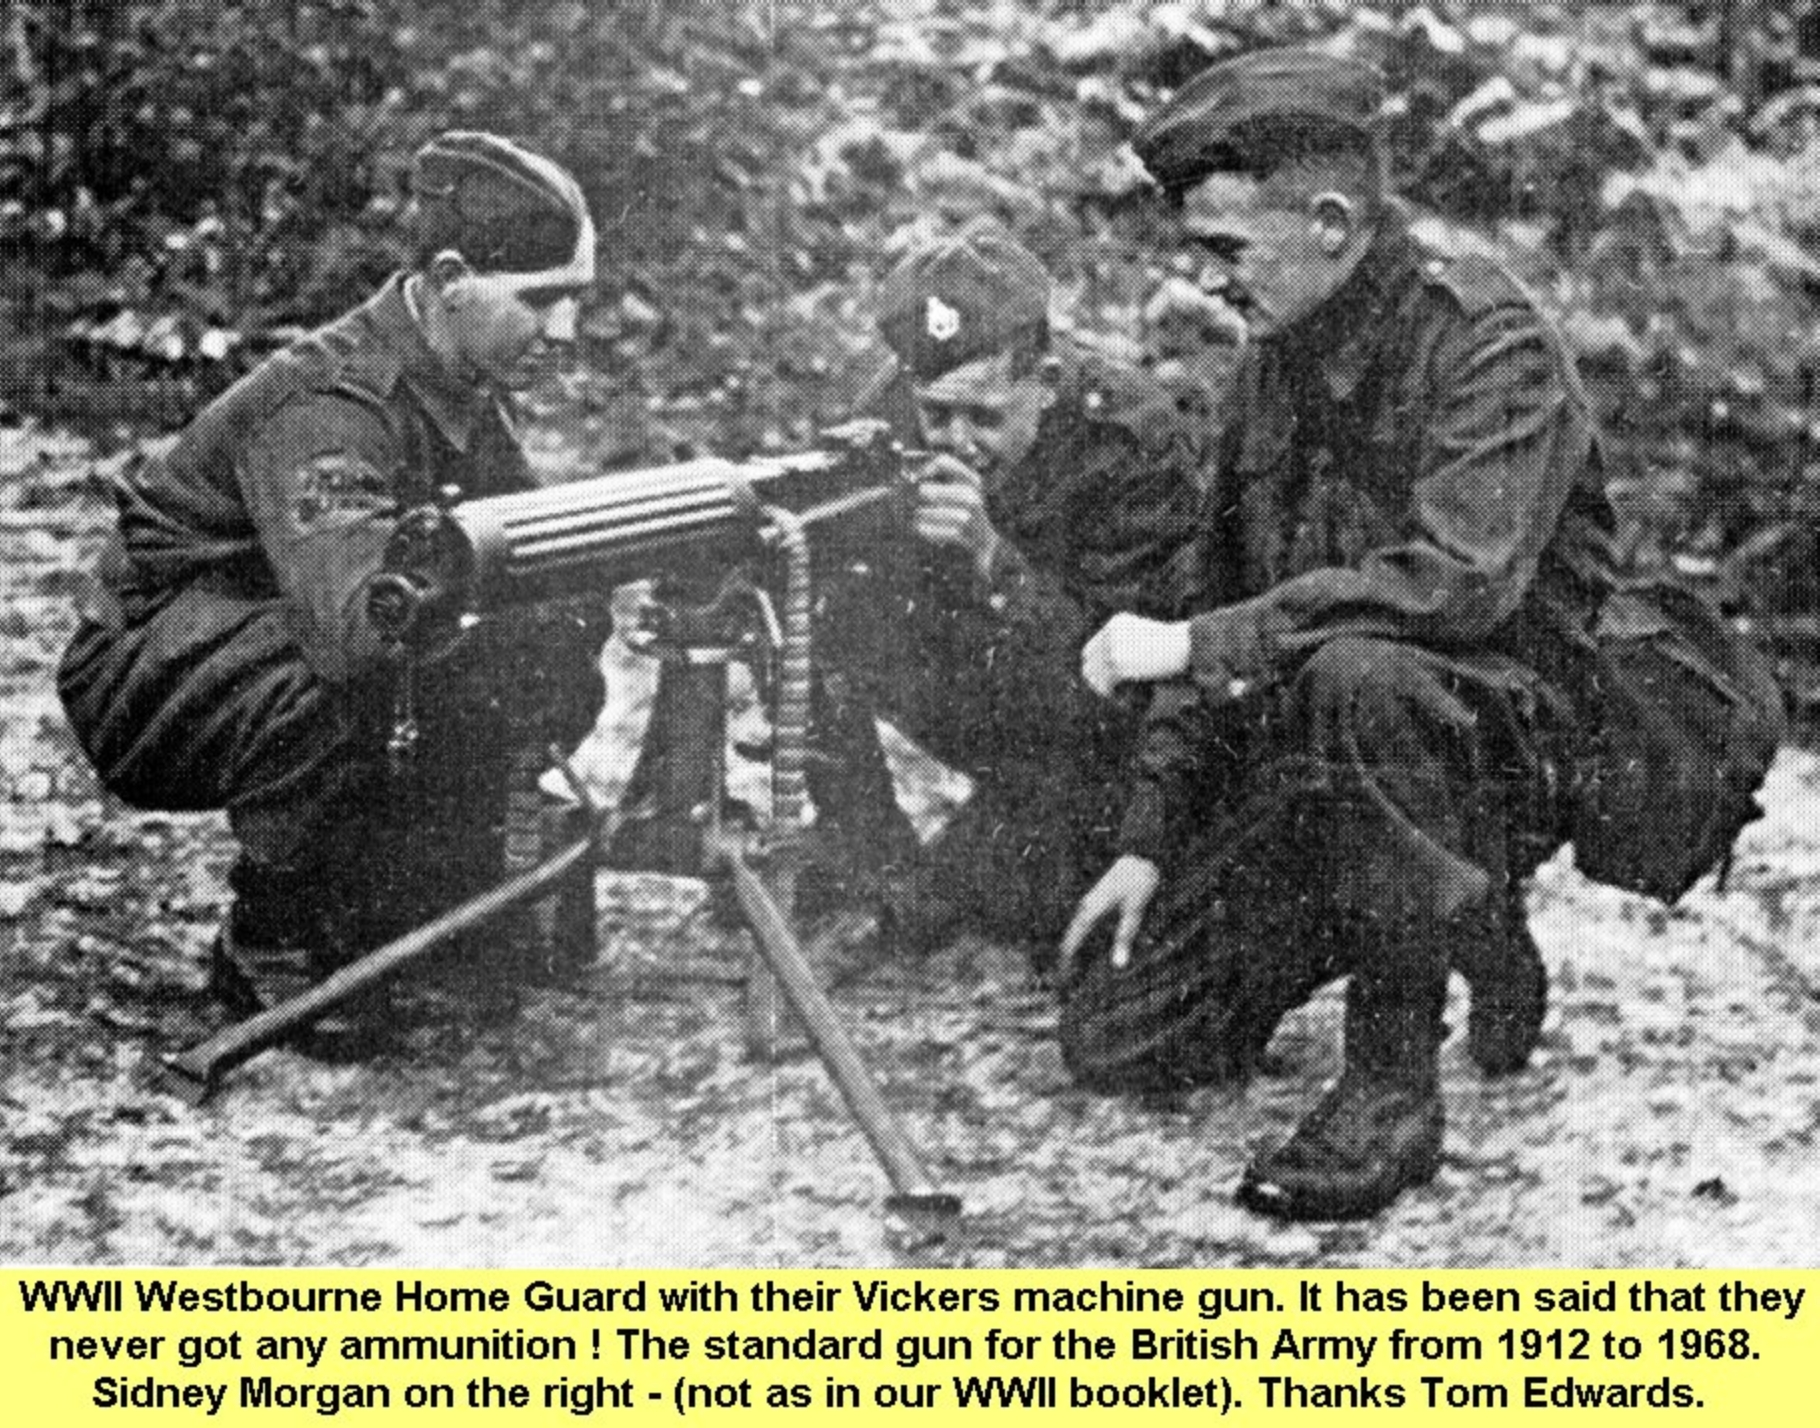 WESTBOURNE HISTORY PHOTO, WESTBOURNE HOME GUARD, WWII, SIDNEY MORGAN, VICKERS MACHINE GUN